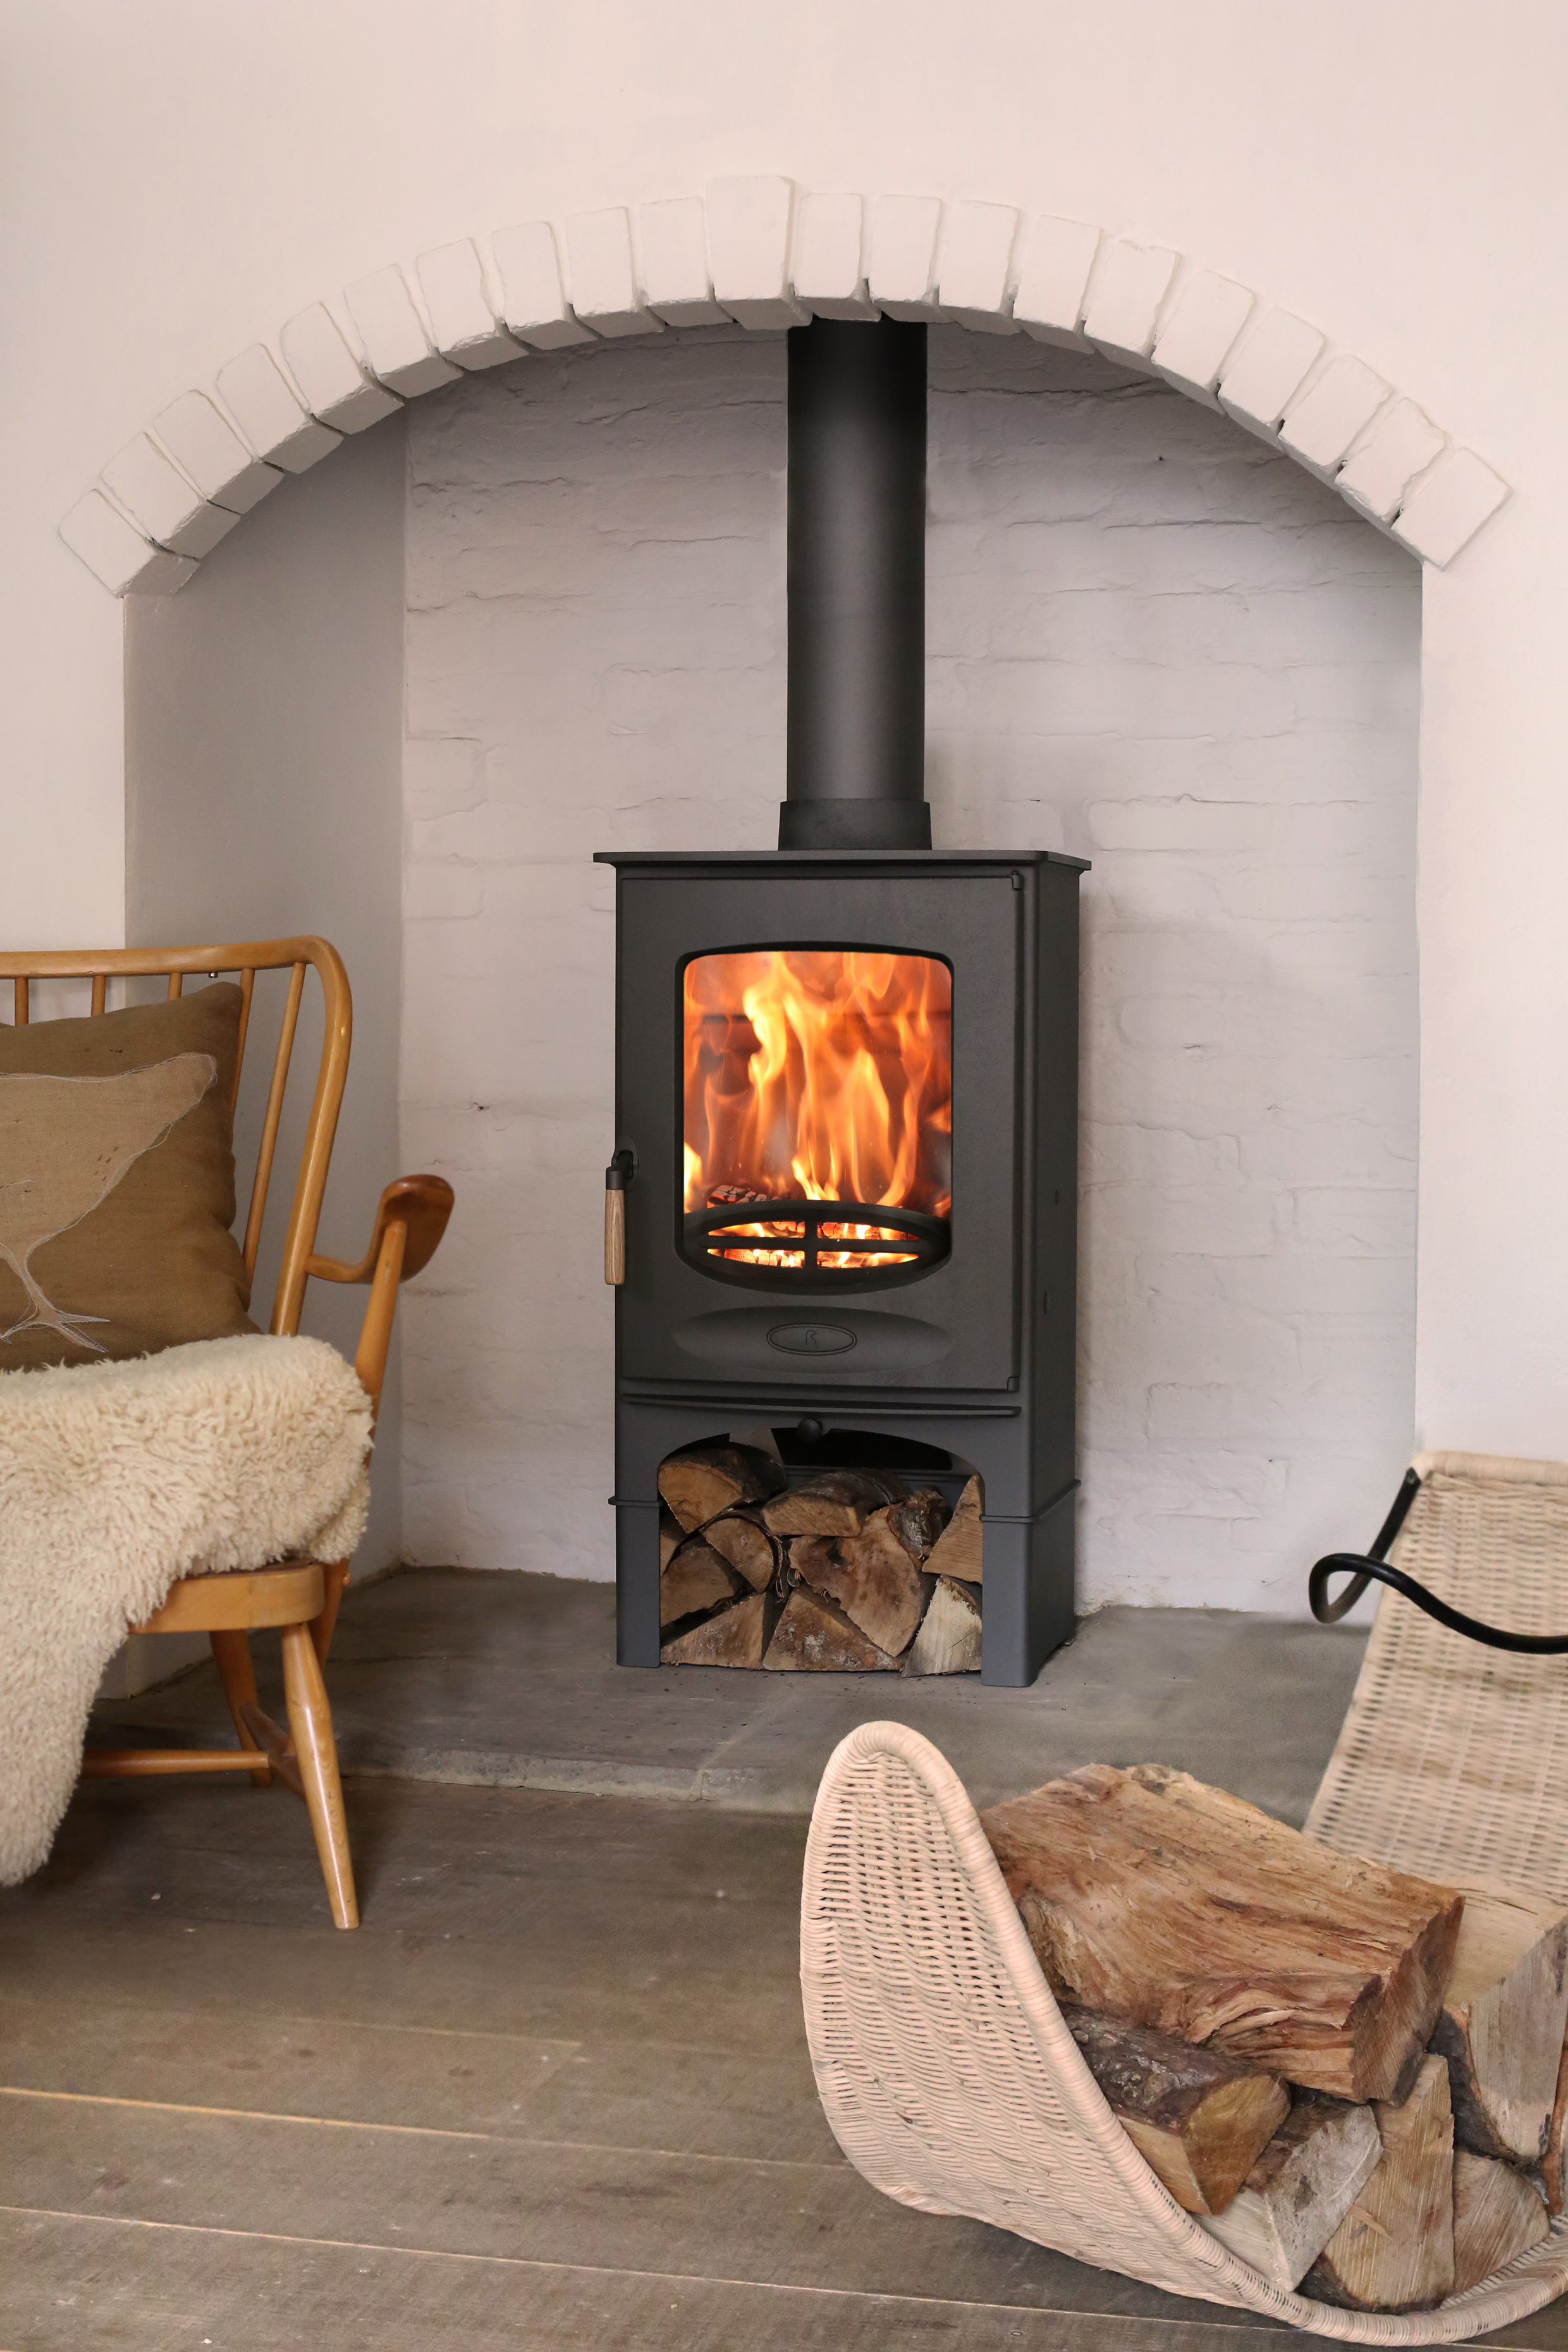 Charnwood C-Eight closed combustion fireplace